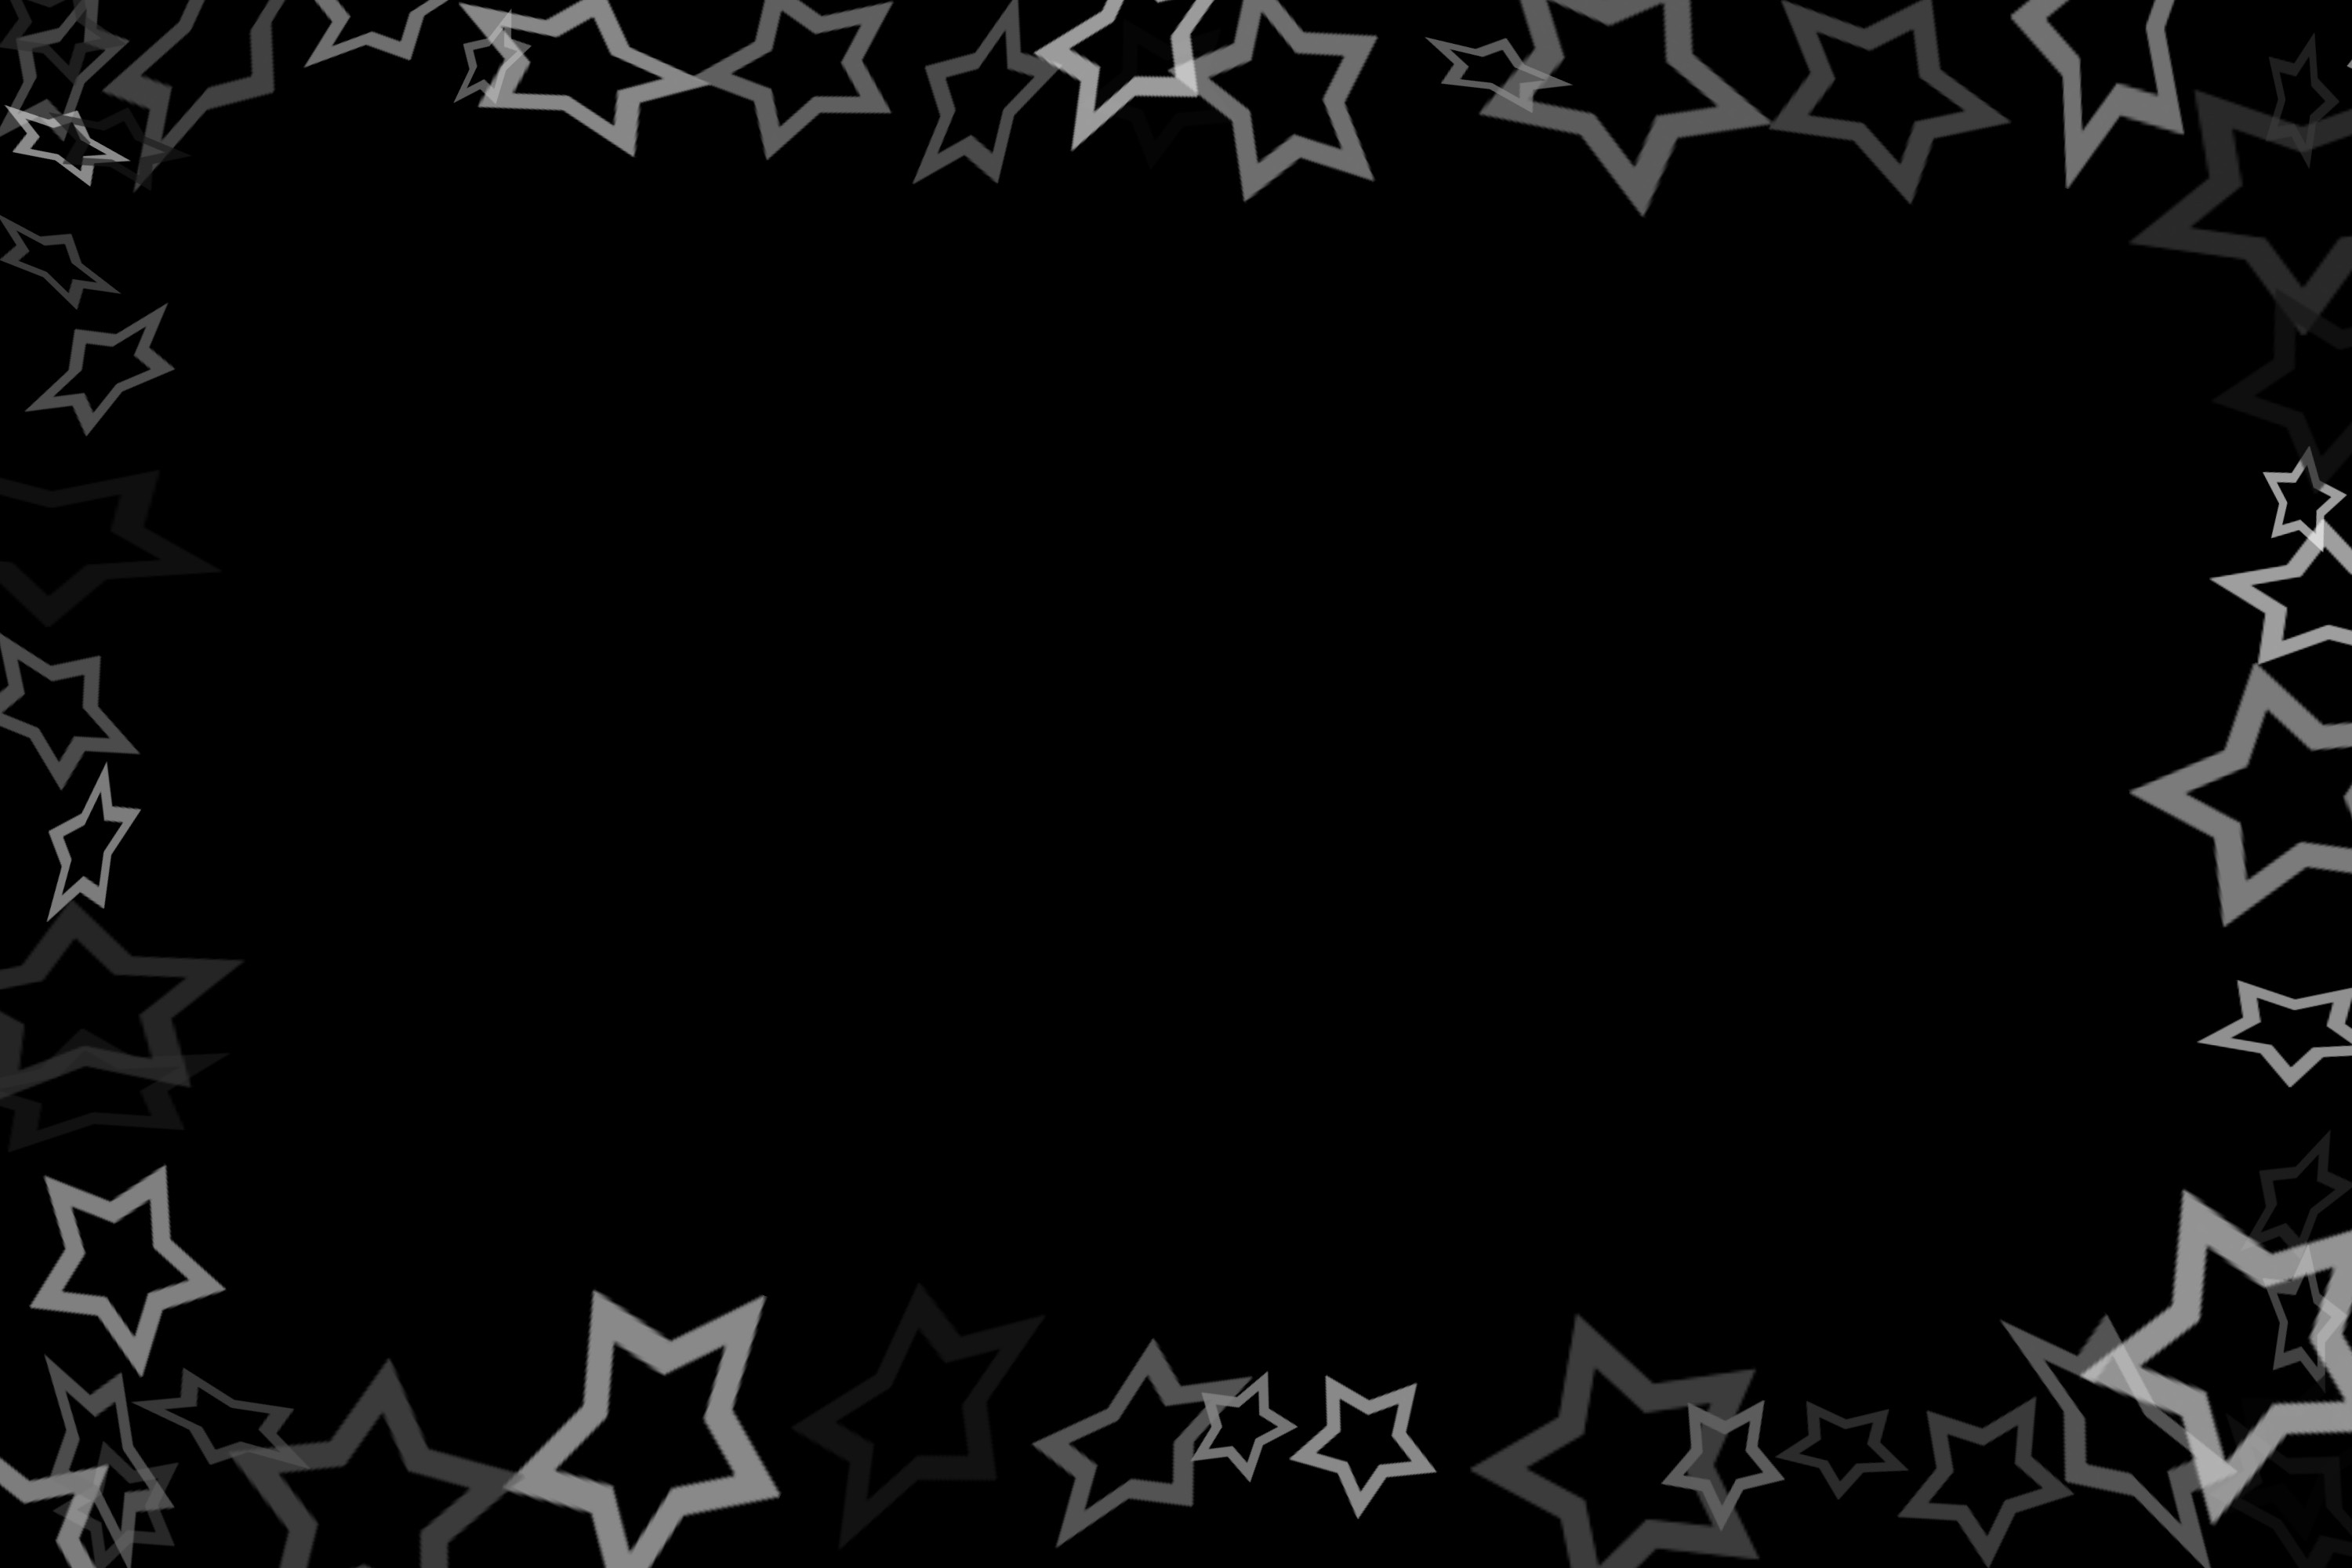 star frame boarder | Free backgrounds and textures | Cr103.com